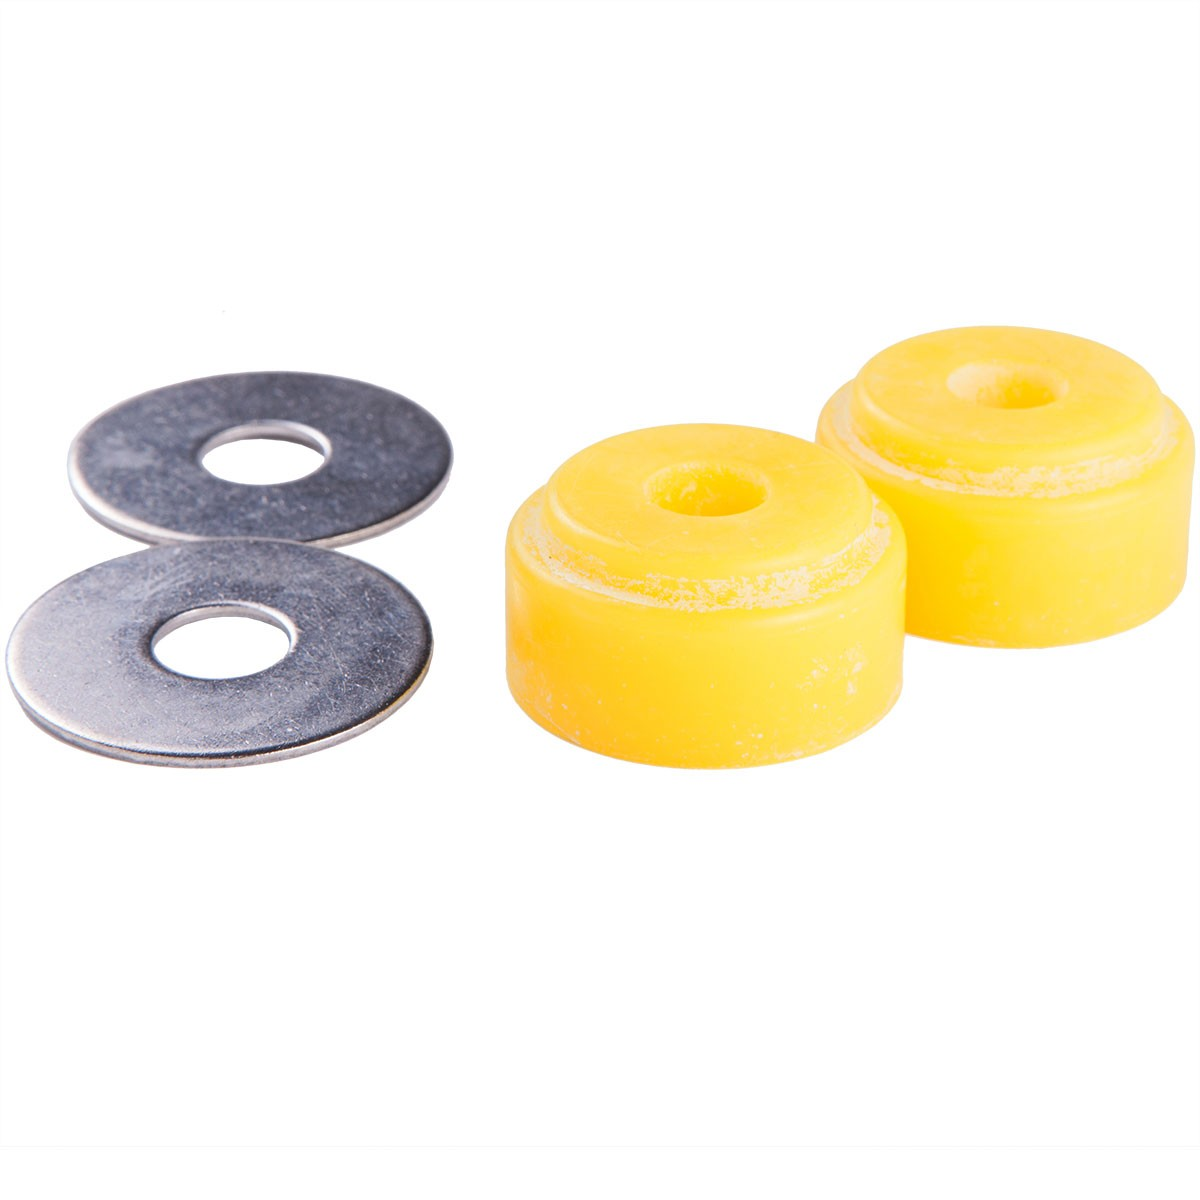 Riptide Chubby Bushings - WFB